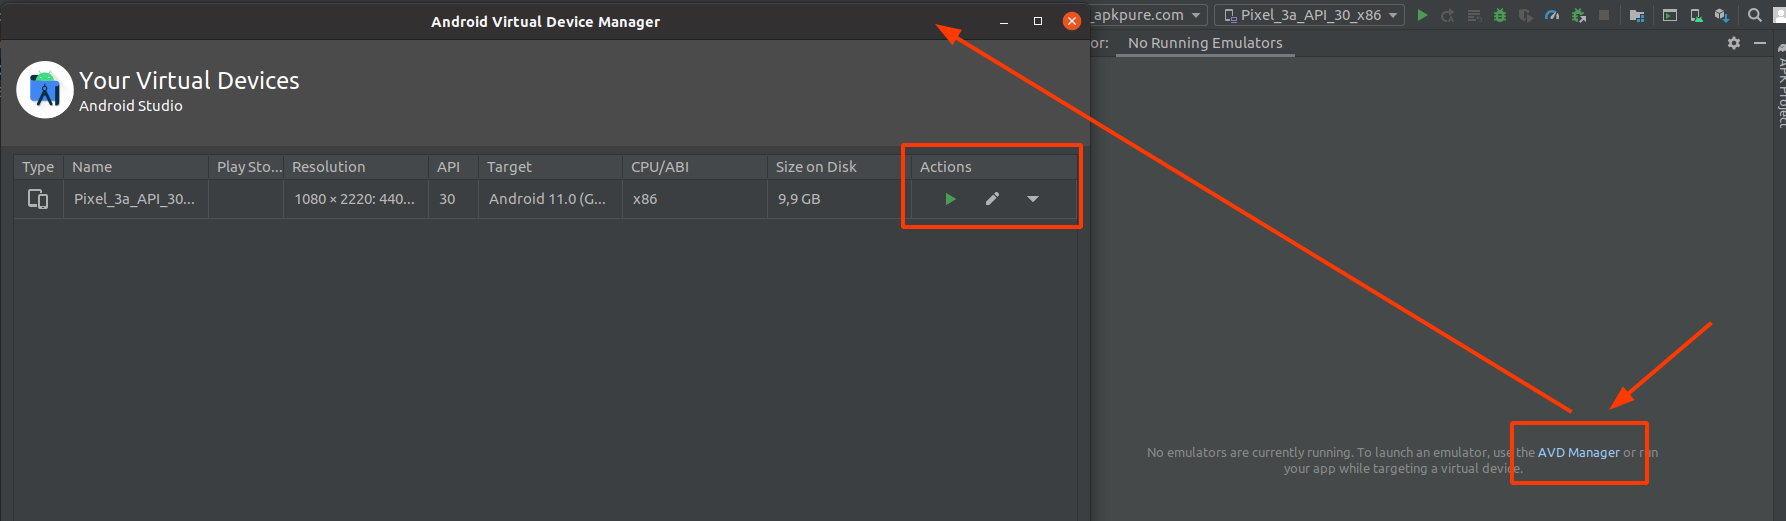 Android Studio - launch AVD